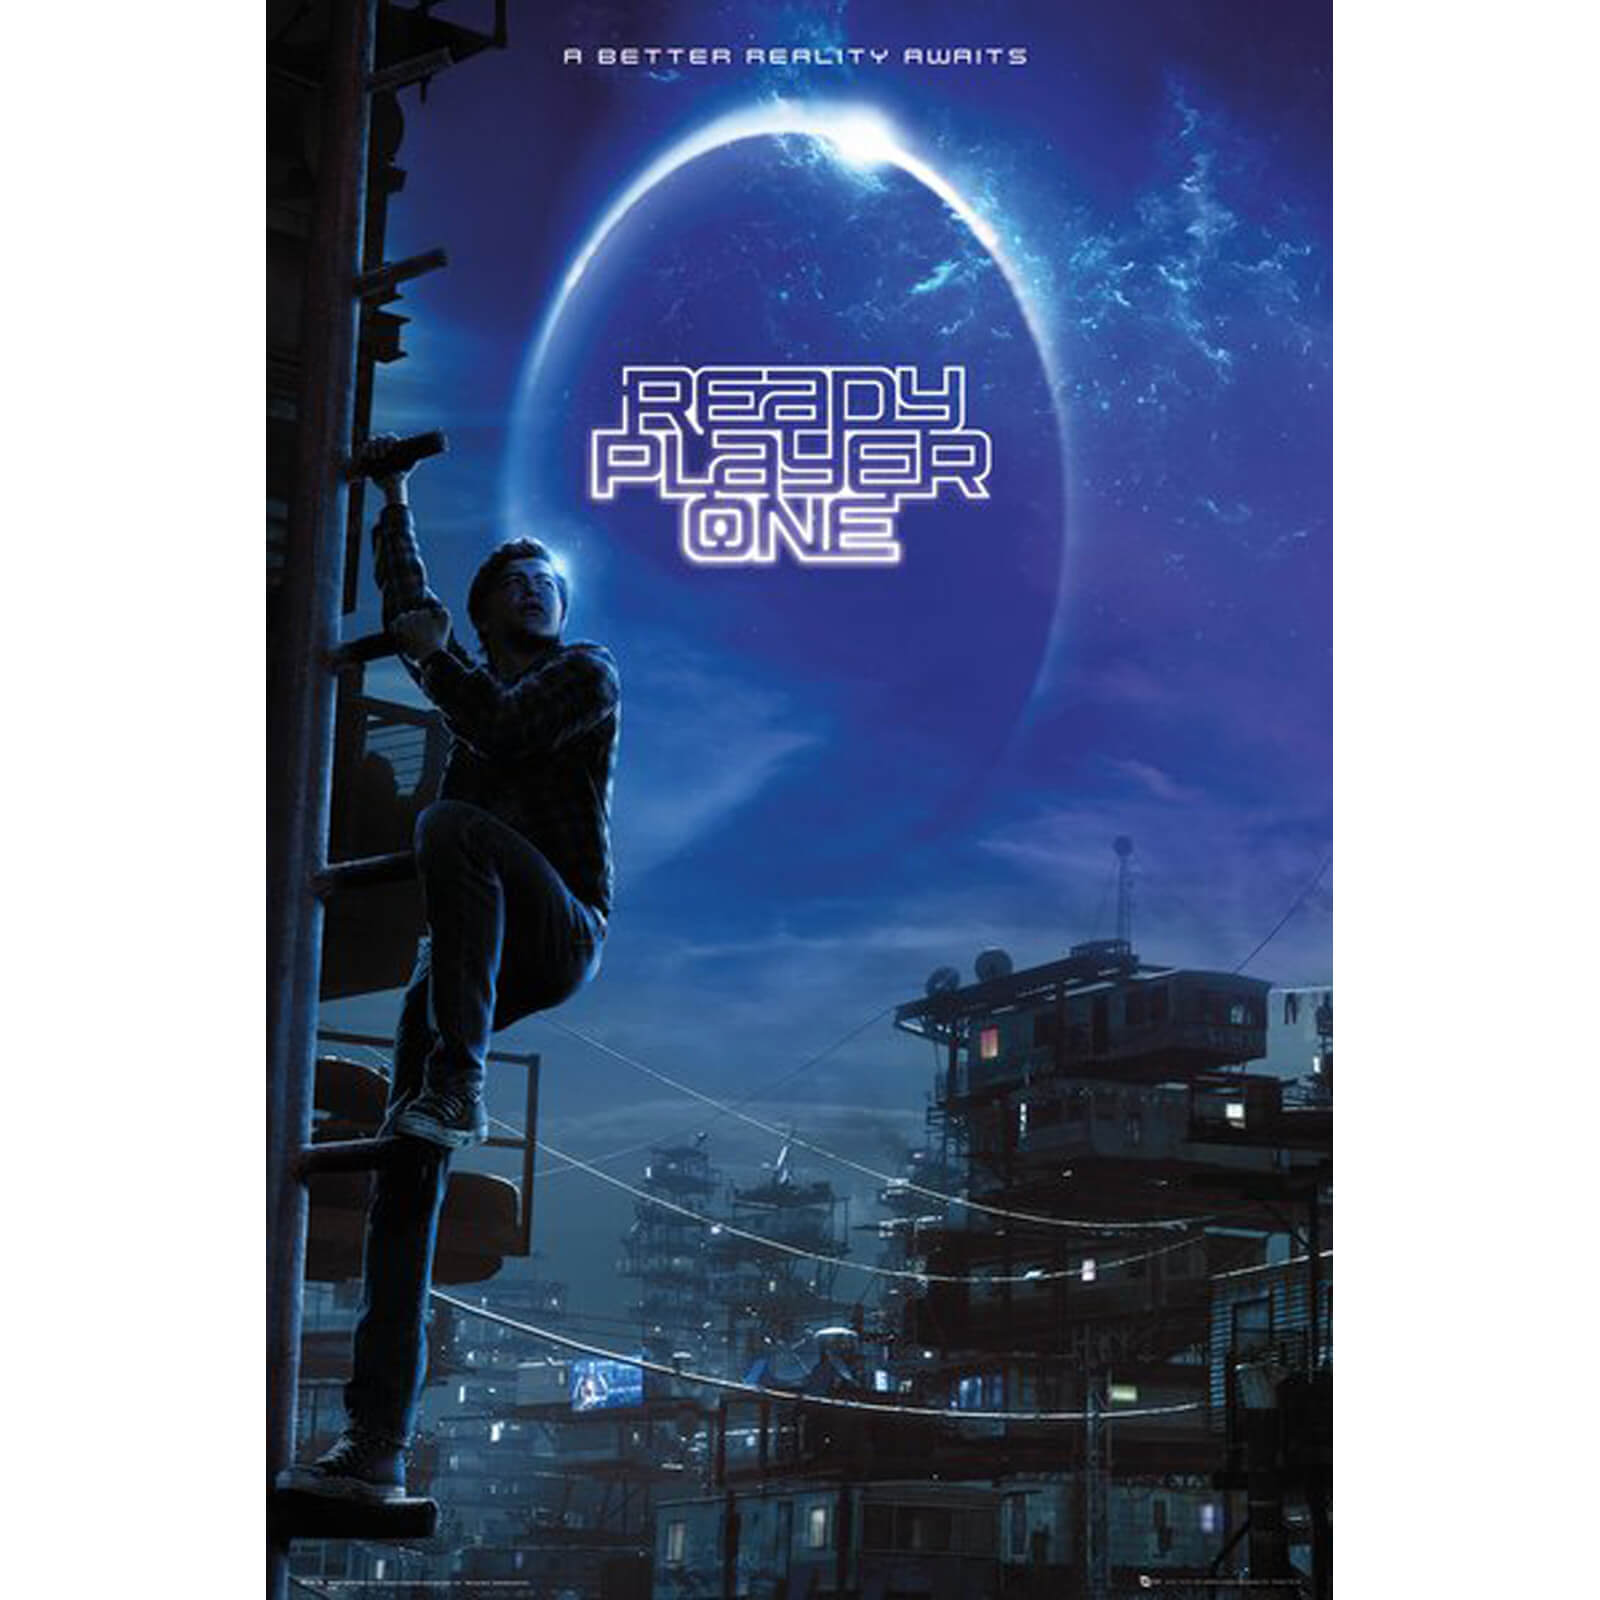 Ready Player One One Sheet Maxi Poster 61 x 91.5cm